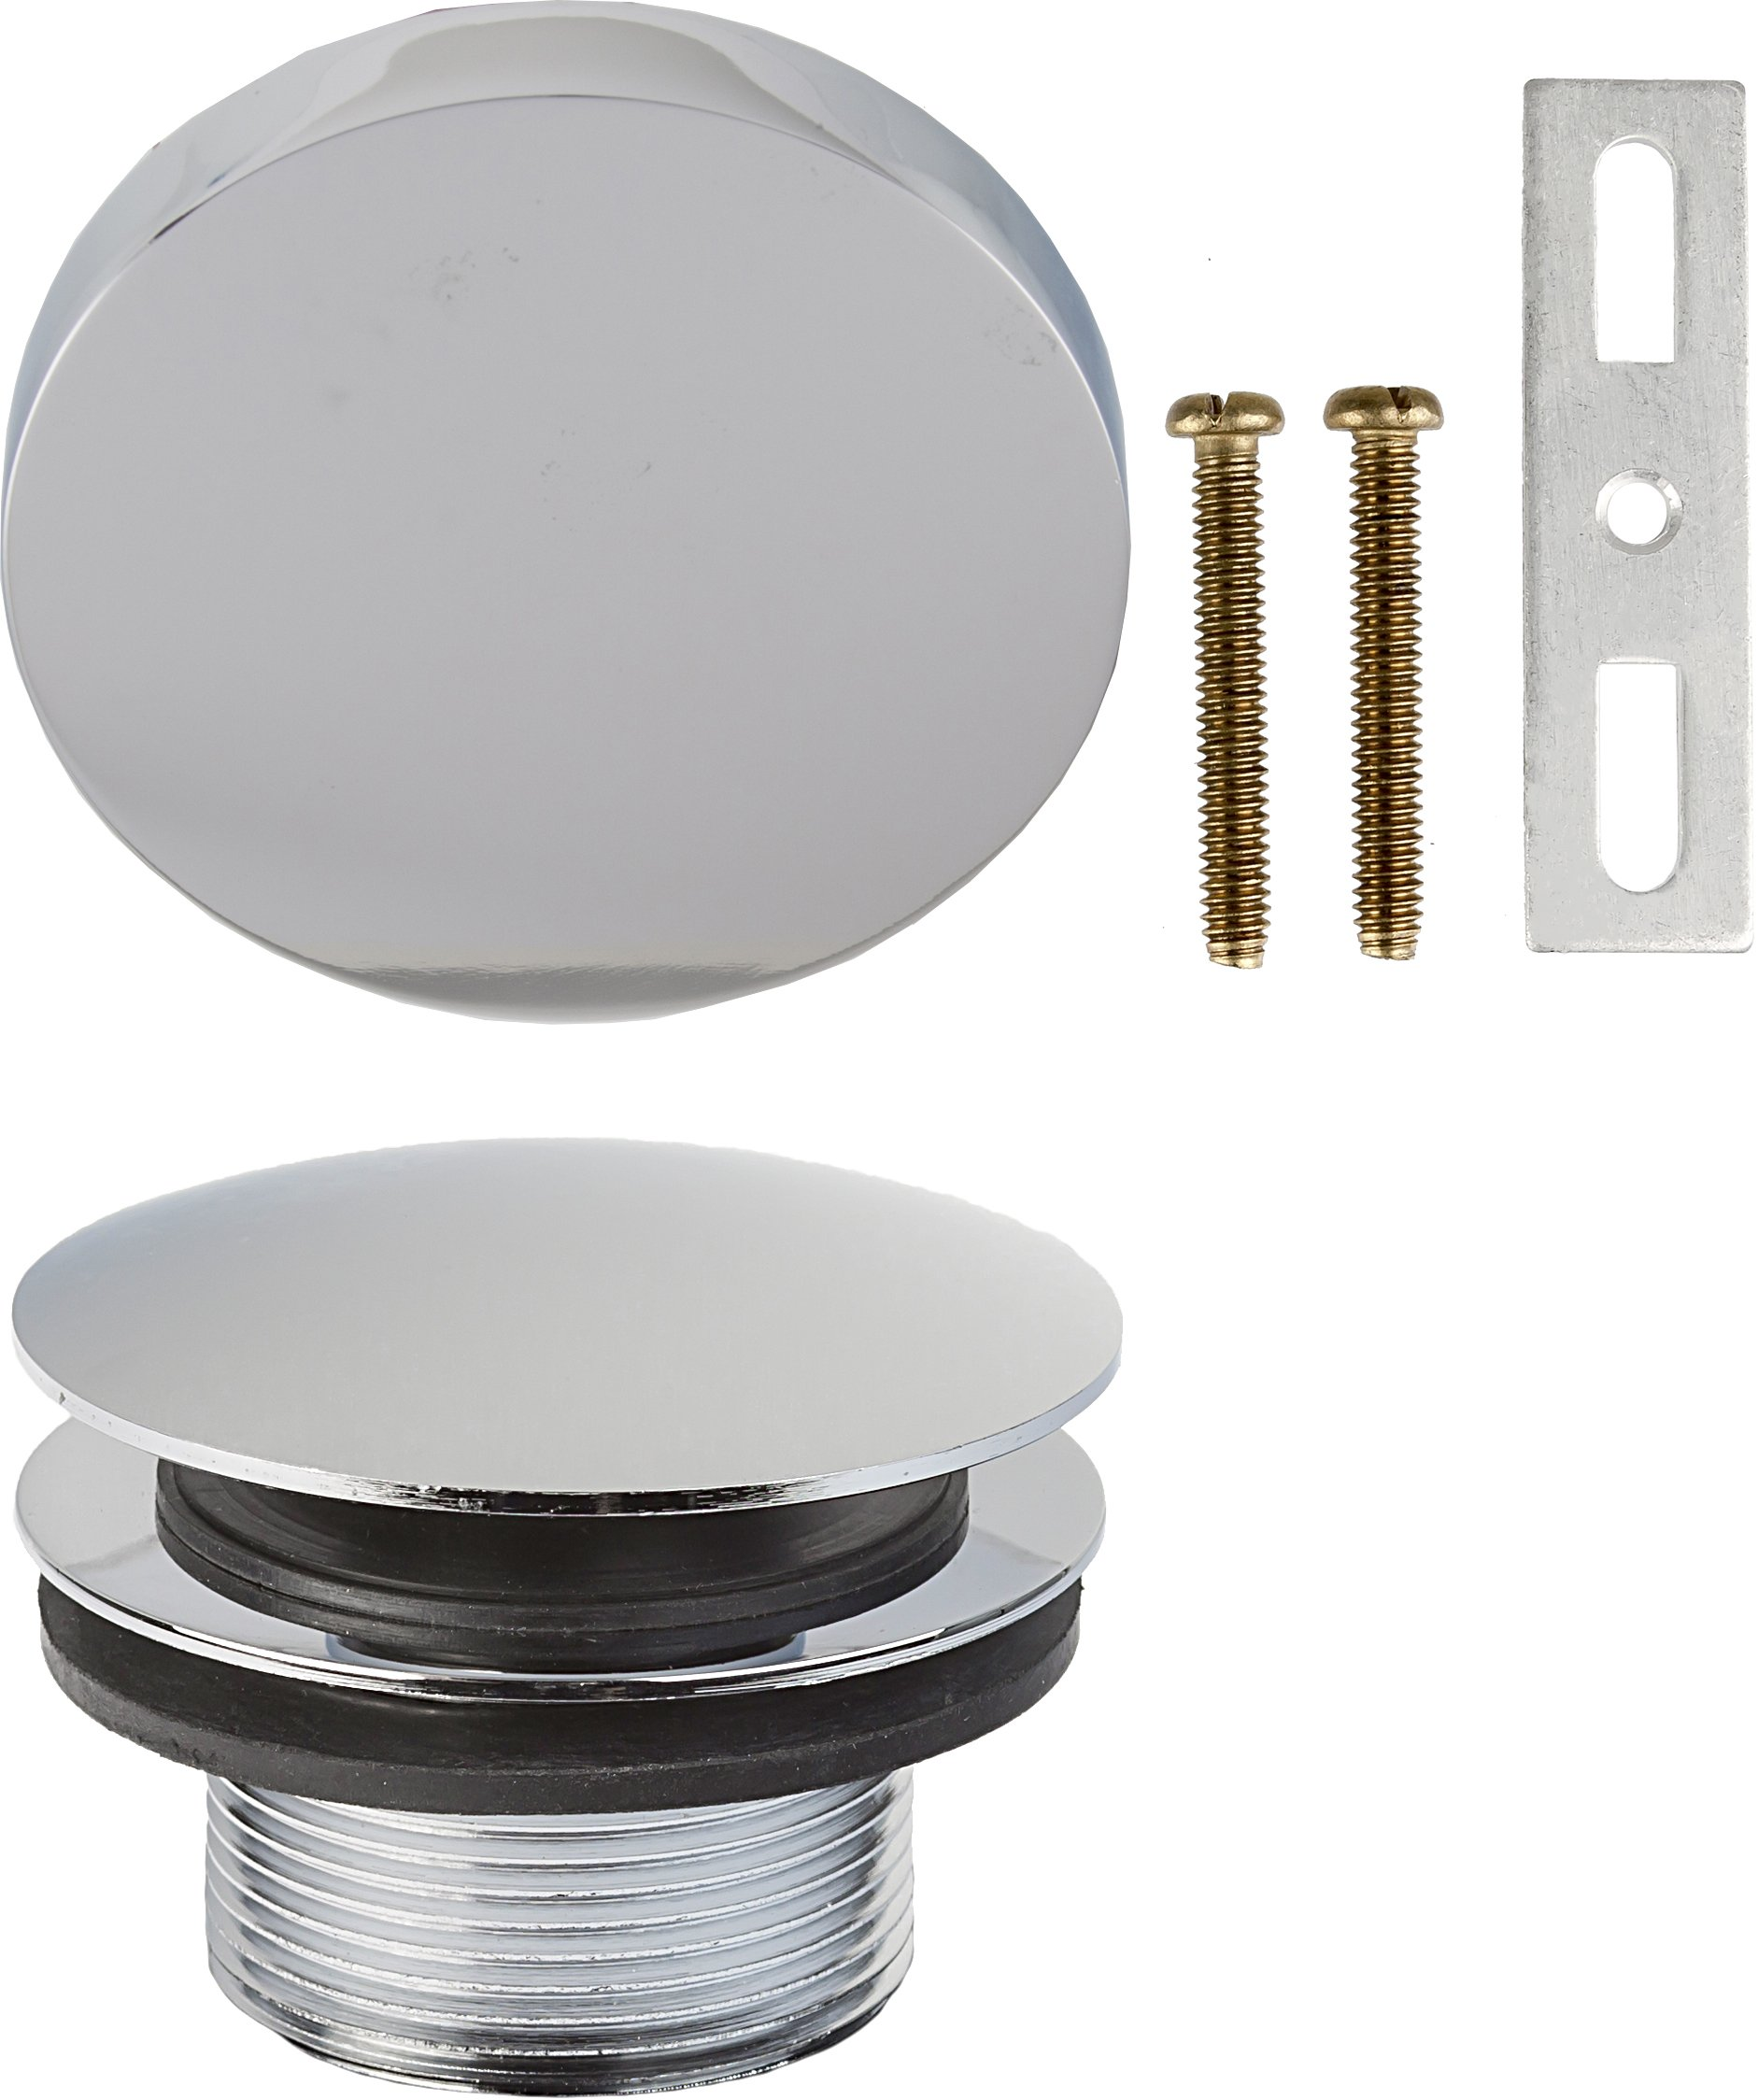 1-1/2'' Modern Mushroom Bath Waste Trim (Tub Drain and Faceplate)